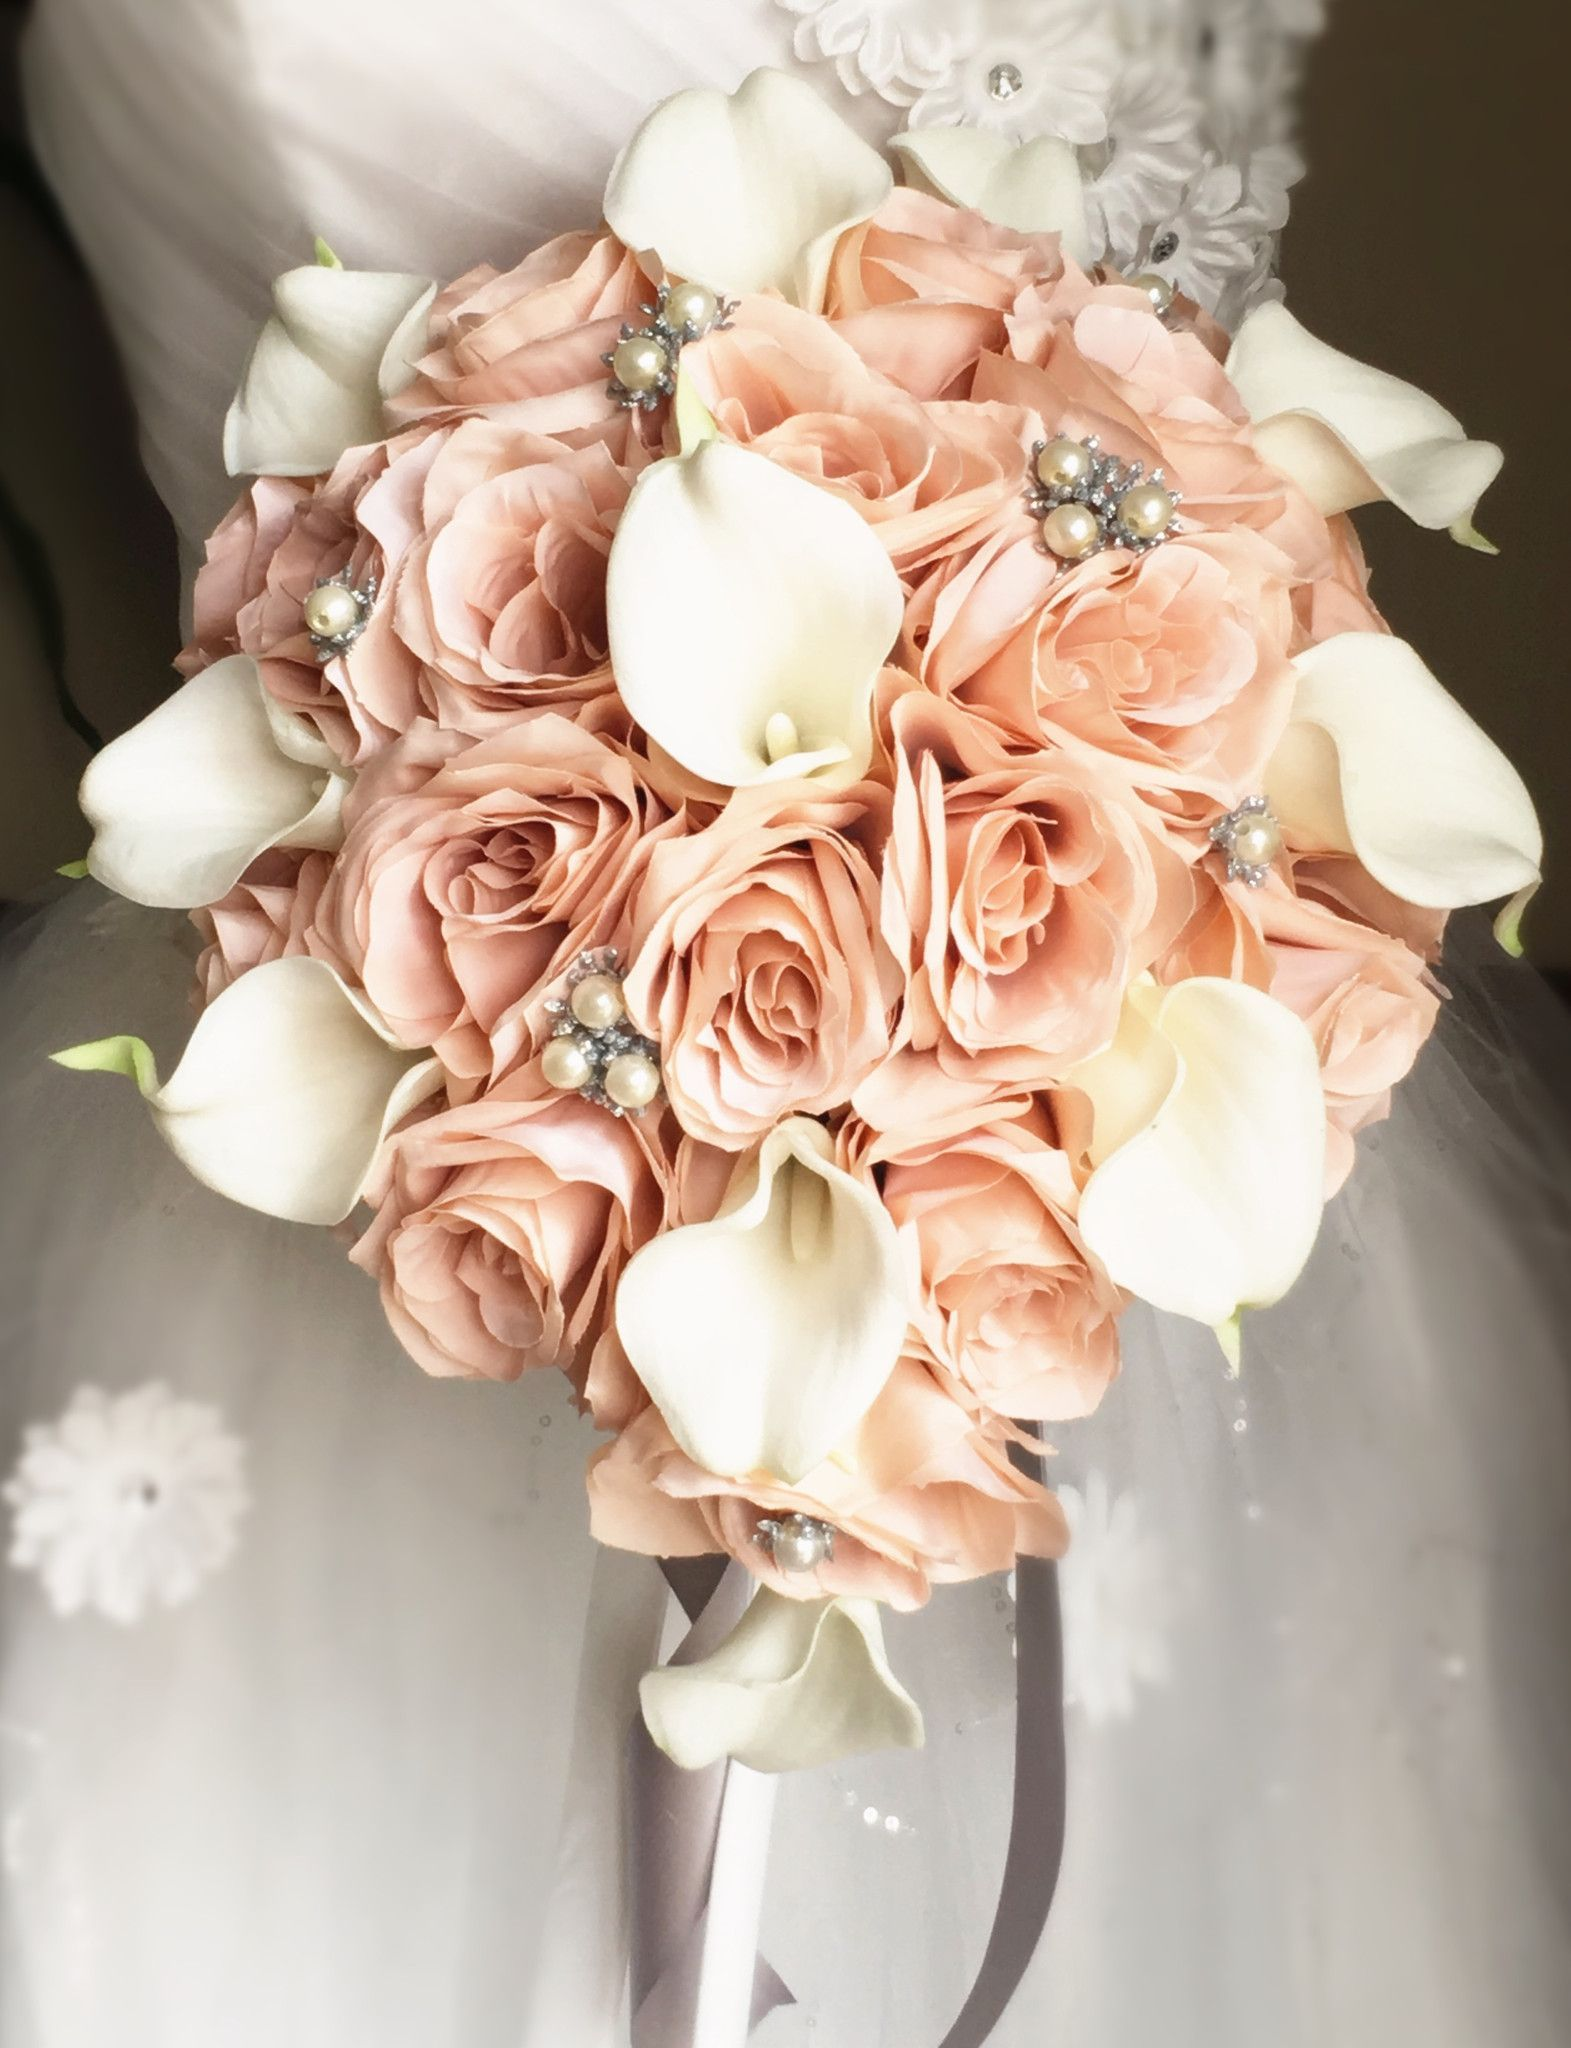 ARTIFICIAL SILK FLOWERS WEDDING POSY IVORY PINK ROSE PINK CALLA LILY